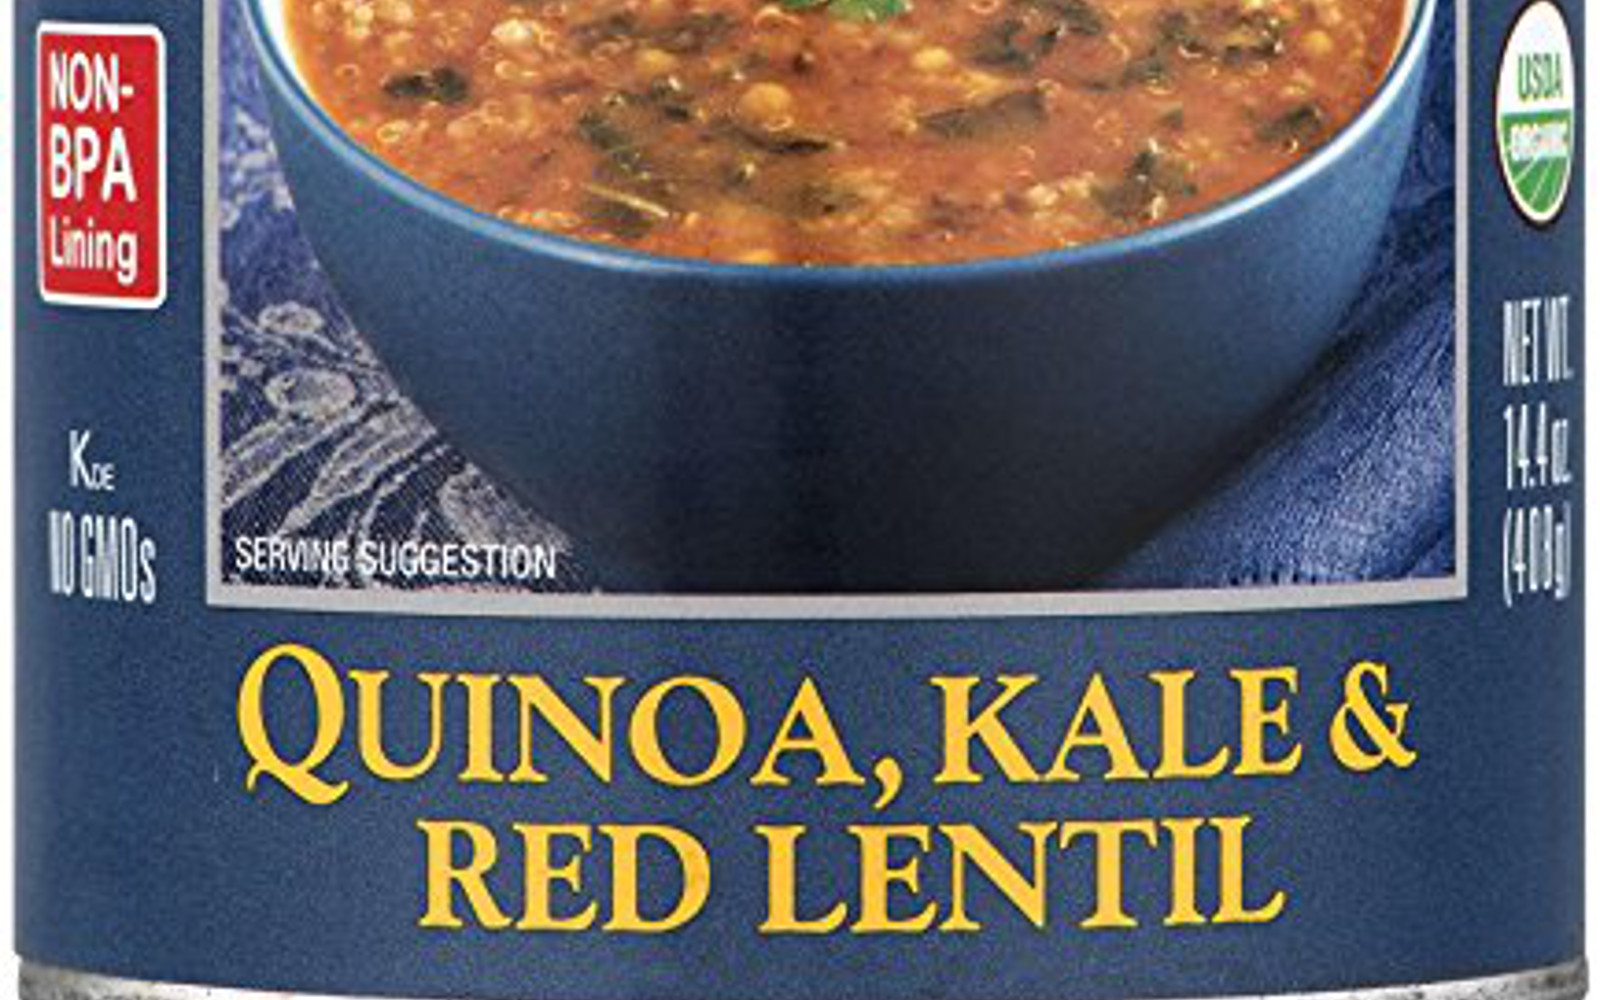 Healthy Amazon Soup Finds for the Vegan College Student | Vegan Amy's Organic Soups, Quinoa Kale & Red Lentil, 14.4 Ounce